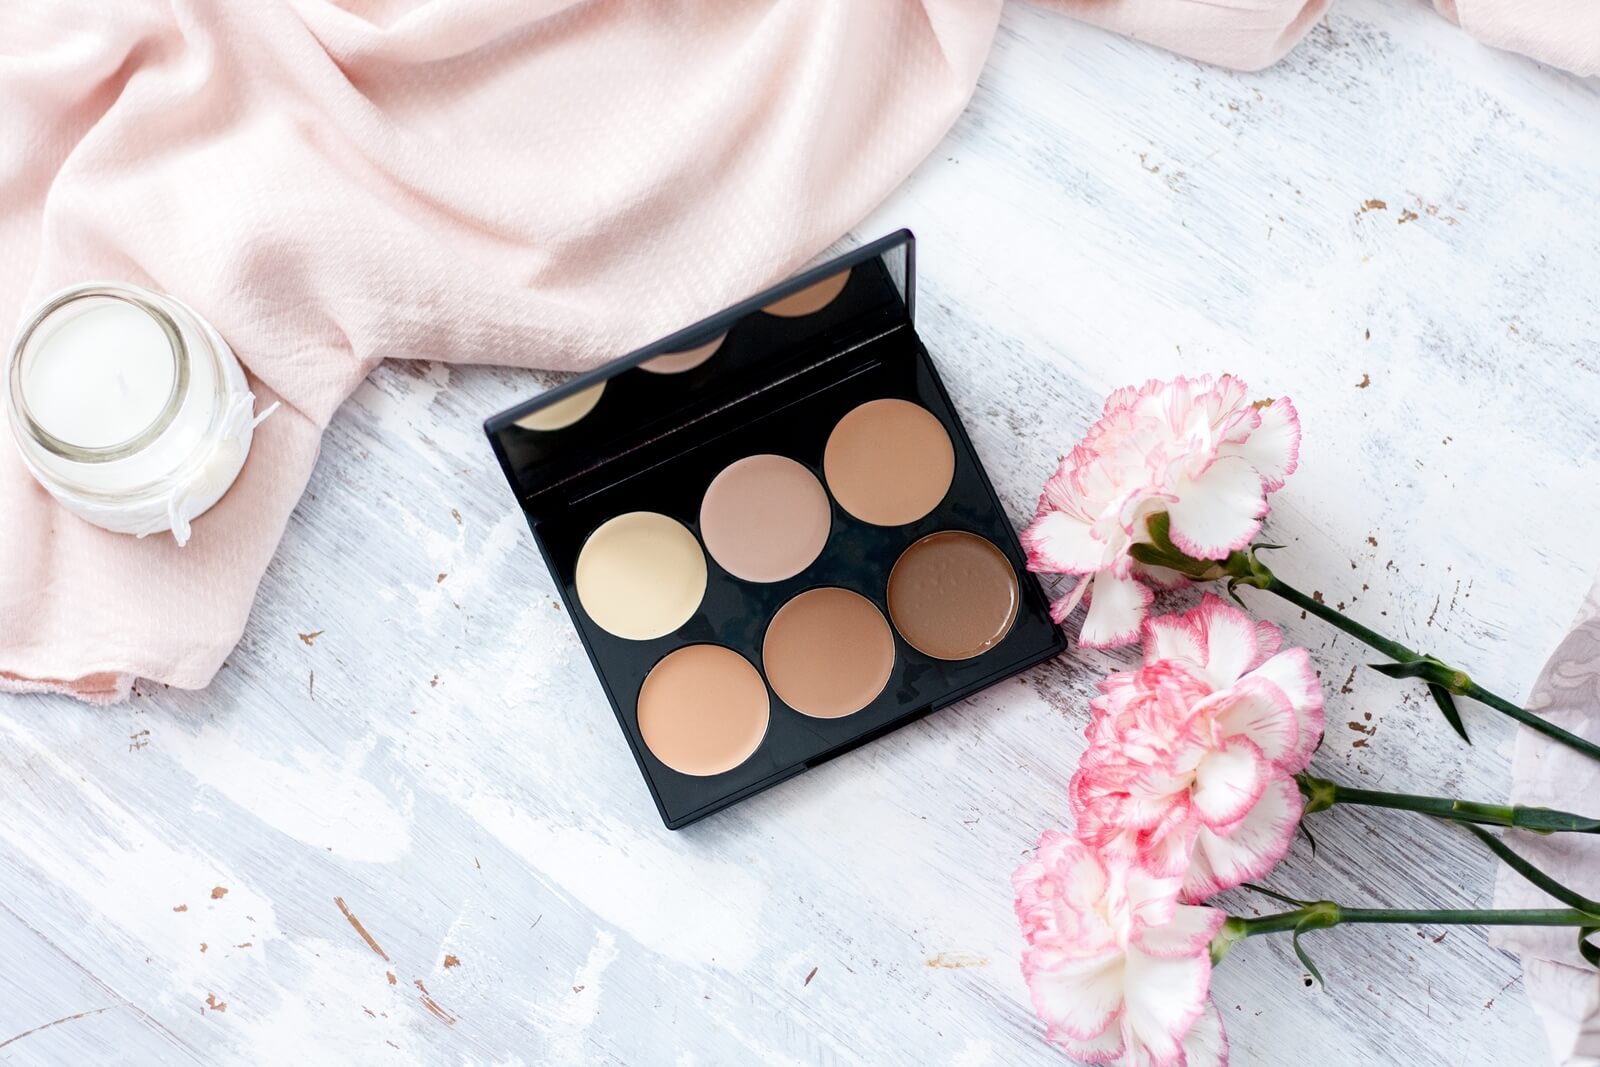 paletka do konturowania od Sleek - Cream Contour Kit w wersji Light.